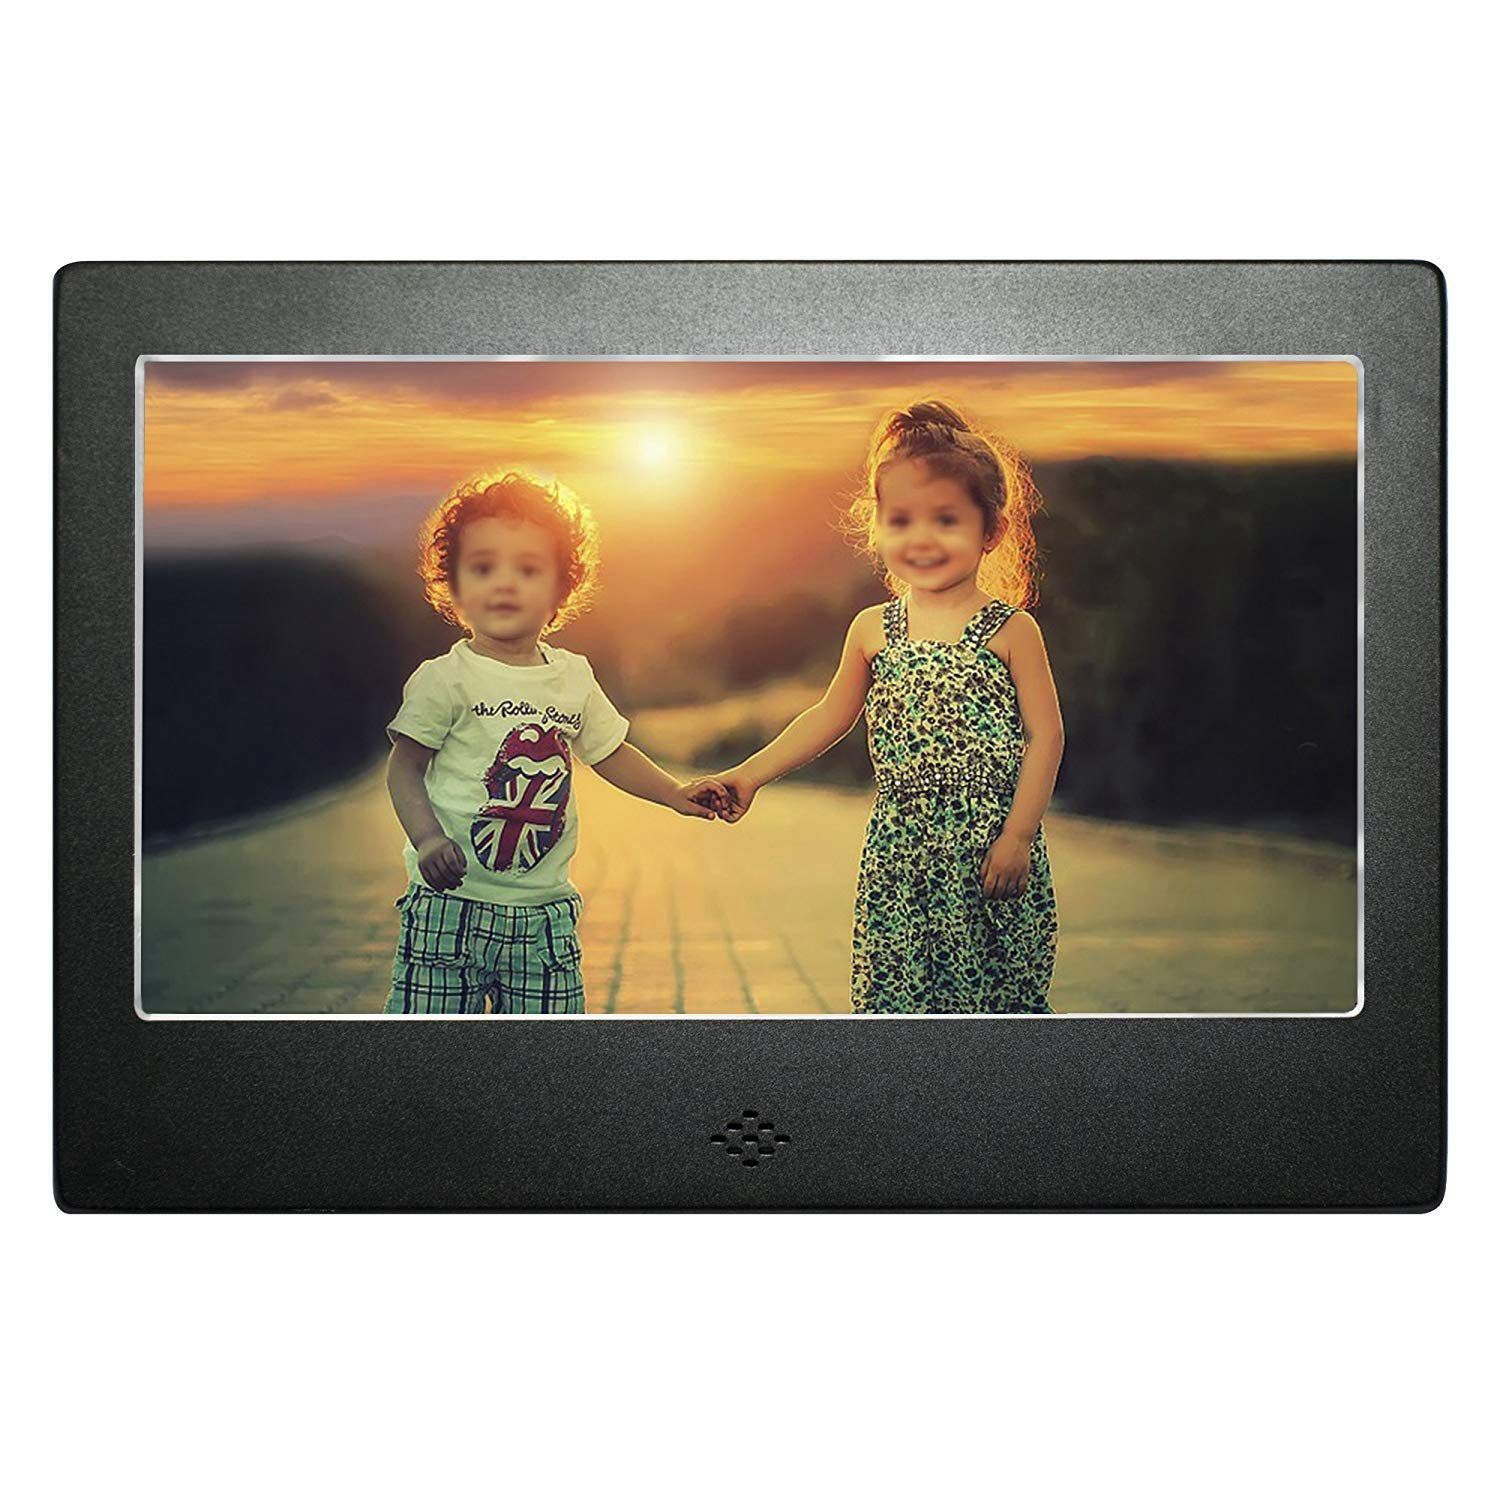 7 inch Digital Photo Frame Black Matte High Resolution w/Backlight and Remote- Mains Powered with USB AND SD card port (EU Plug) шапка adidas performance adidas performance ad094cuunz02 page 6